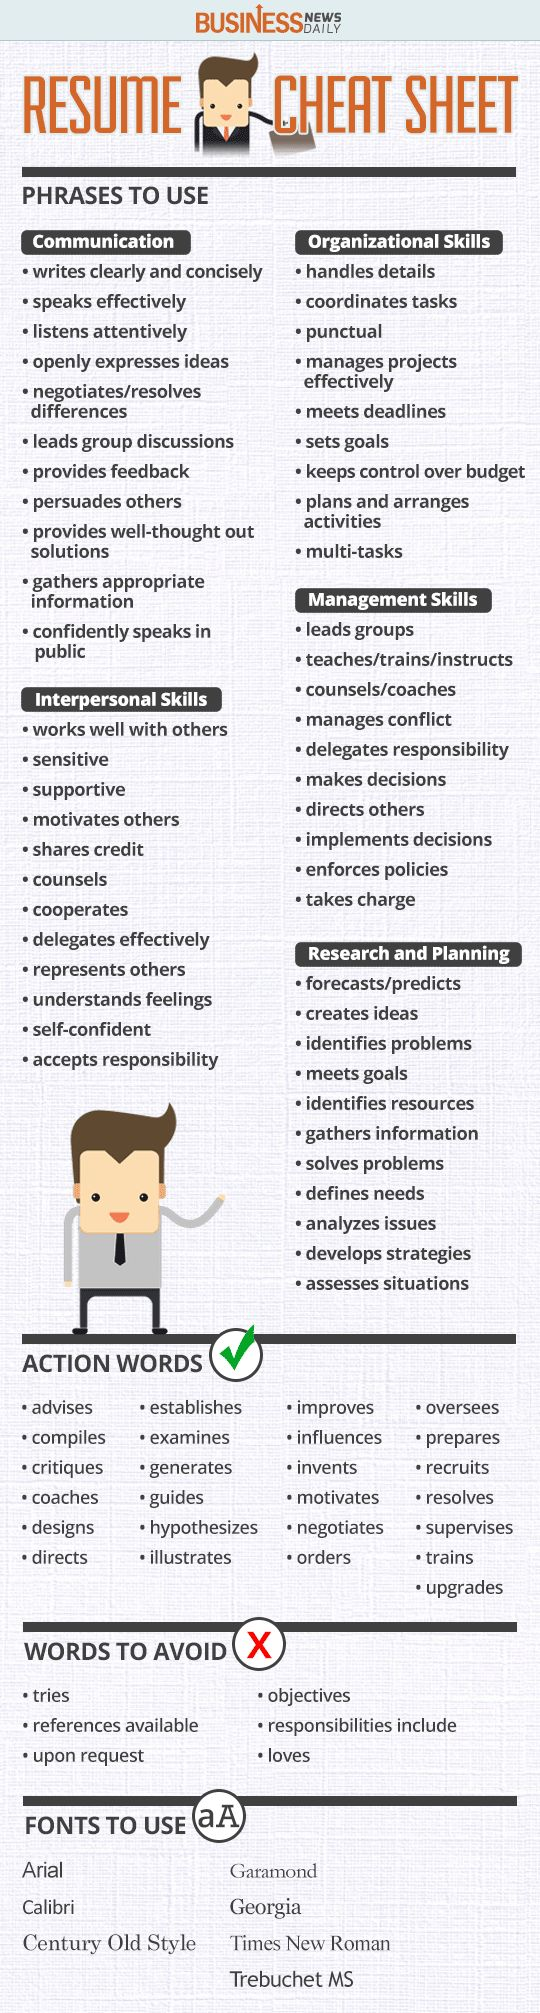 Opposenewapstandardsus  Fascinating  Ideas About Resume On Pinterest  Cv Format Resume Cv And  With Remarkable Resume Cheat Sheet Infographic Andrews Almost Done With A Complete Unit On Employment Which With Appealing Windows Resume Template Also How To Make An Awesome Resume In Addition Order Of Resume And Resume With Gpa As Well As Example Of A Perfect Resume Additionally Putting Together A Resume From Pinterestcom With Opposenewapstandardsus  Remarkable  Ideas About Resume On Pinterest  Cv Format Resume Cv And  With Appealing Resume Cheat Sheet Infographic Andrews Almost Done With A Complete Unit On Employment Which And Fascinating Windows Resume Template Also How To Make An Awesome Resume In Addition Order Of Resume From Pinterestcom